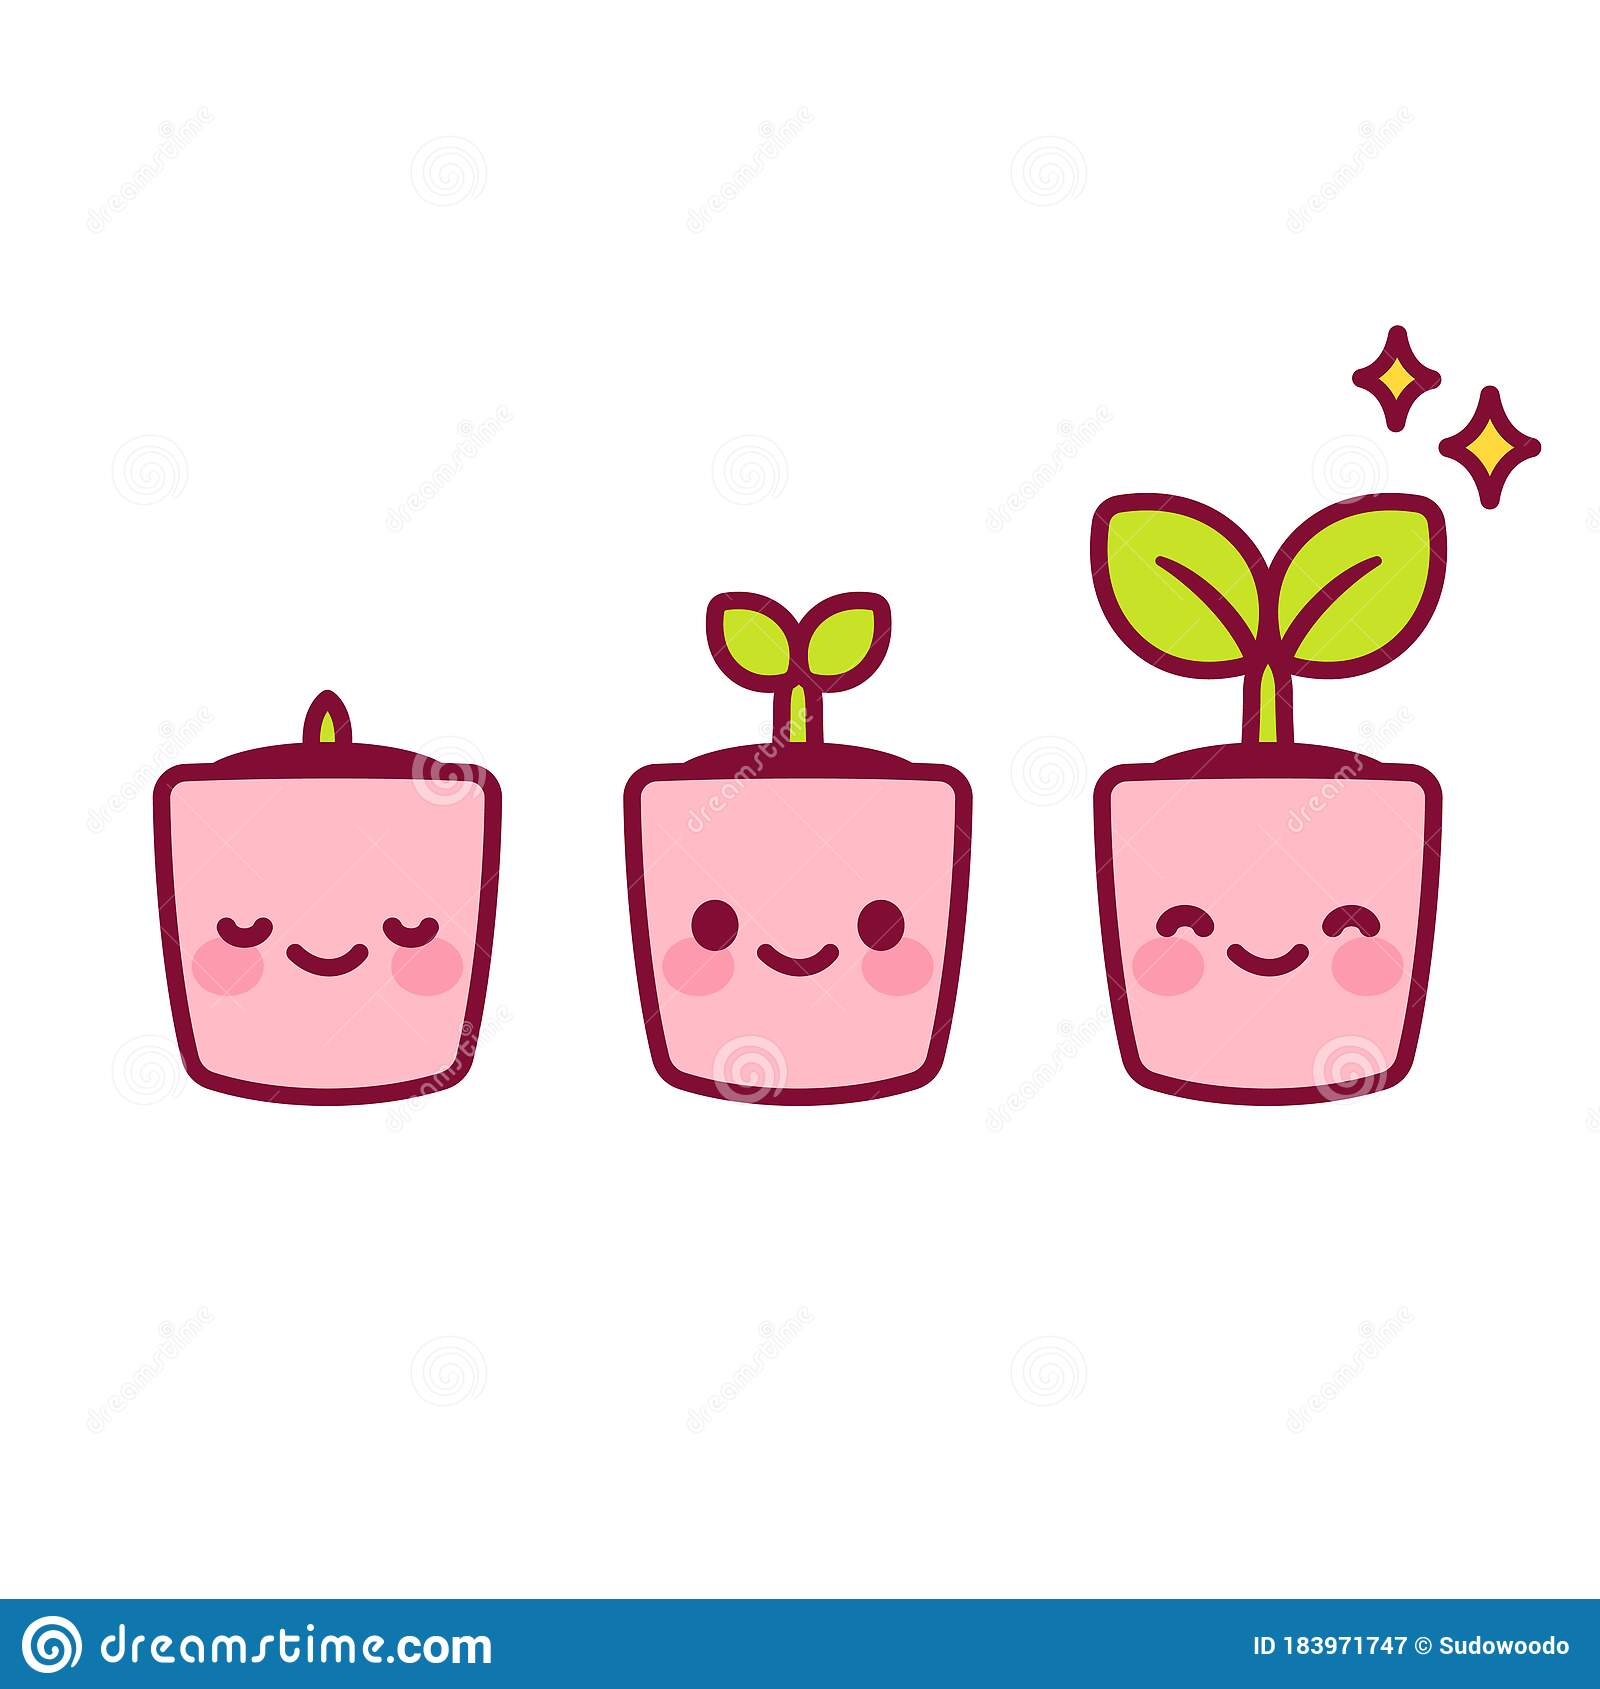 Kawaii Potted Plant Stock Vector Illustration Of Design 183971747